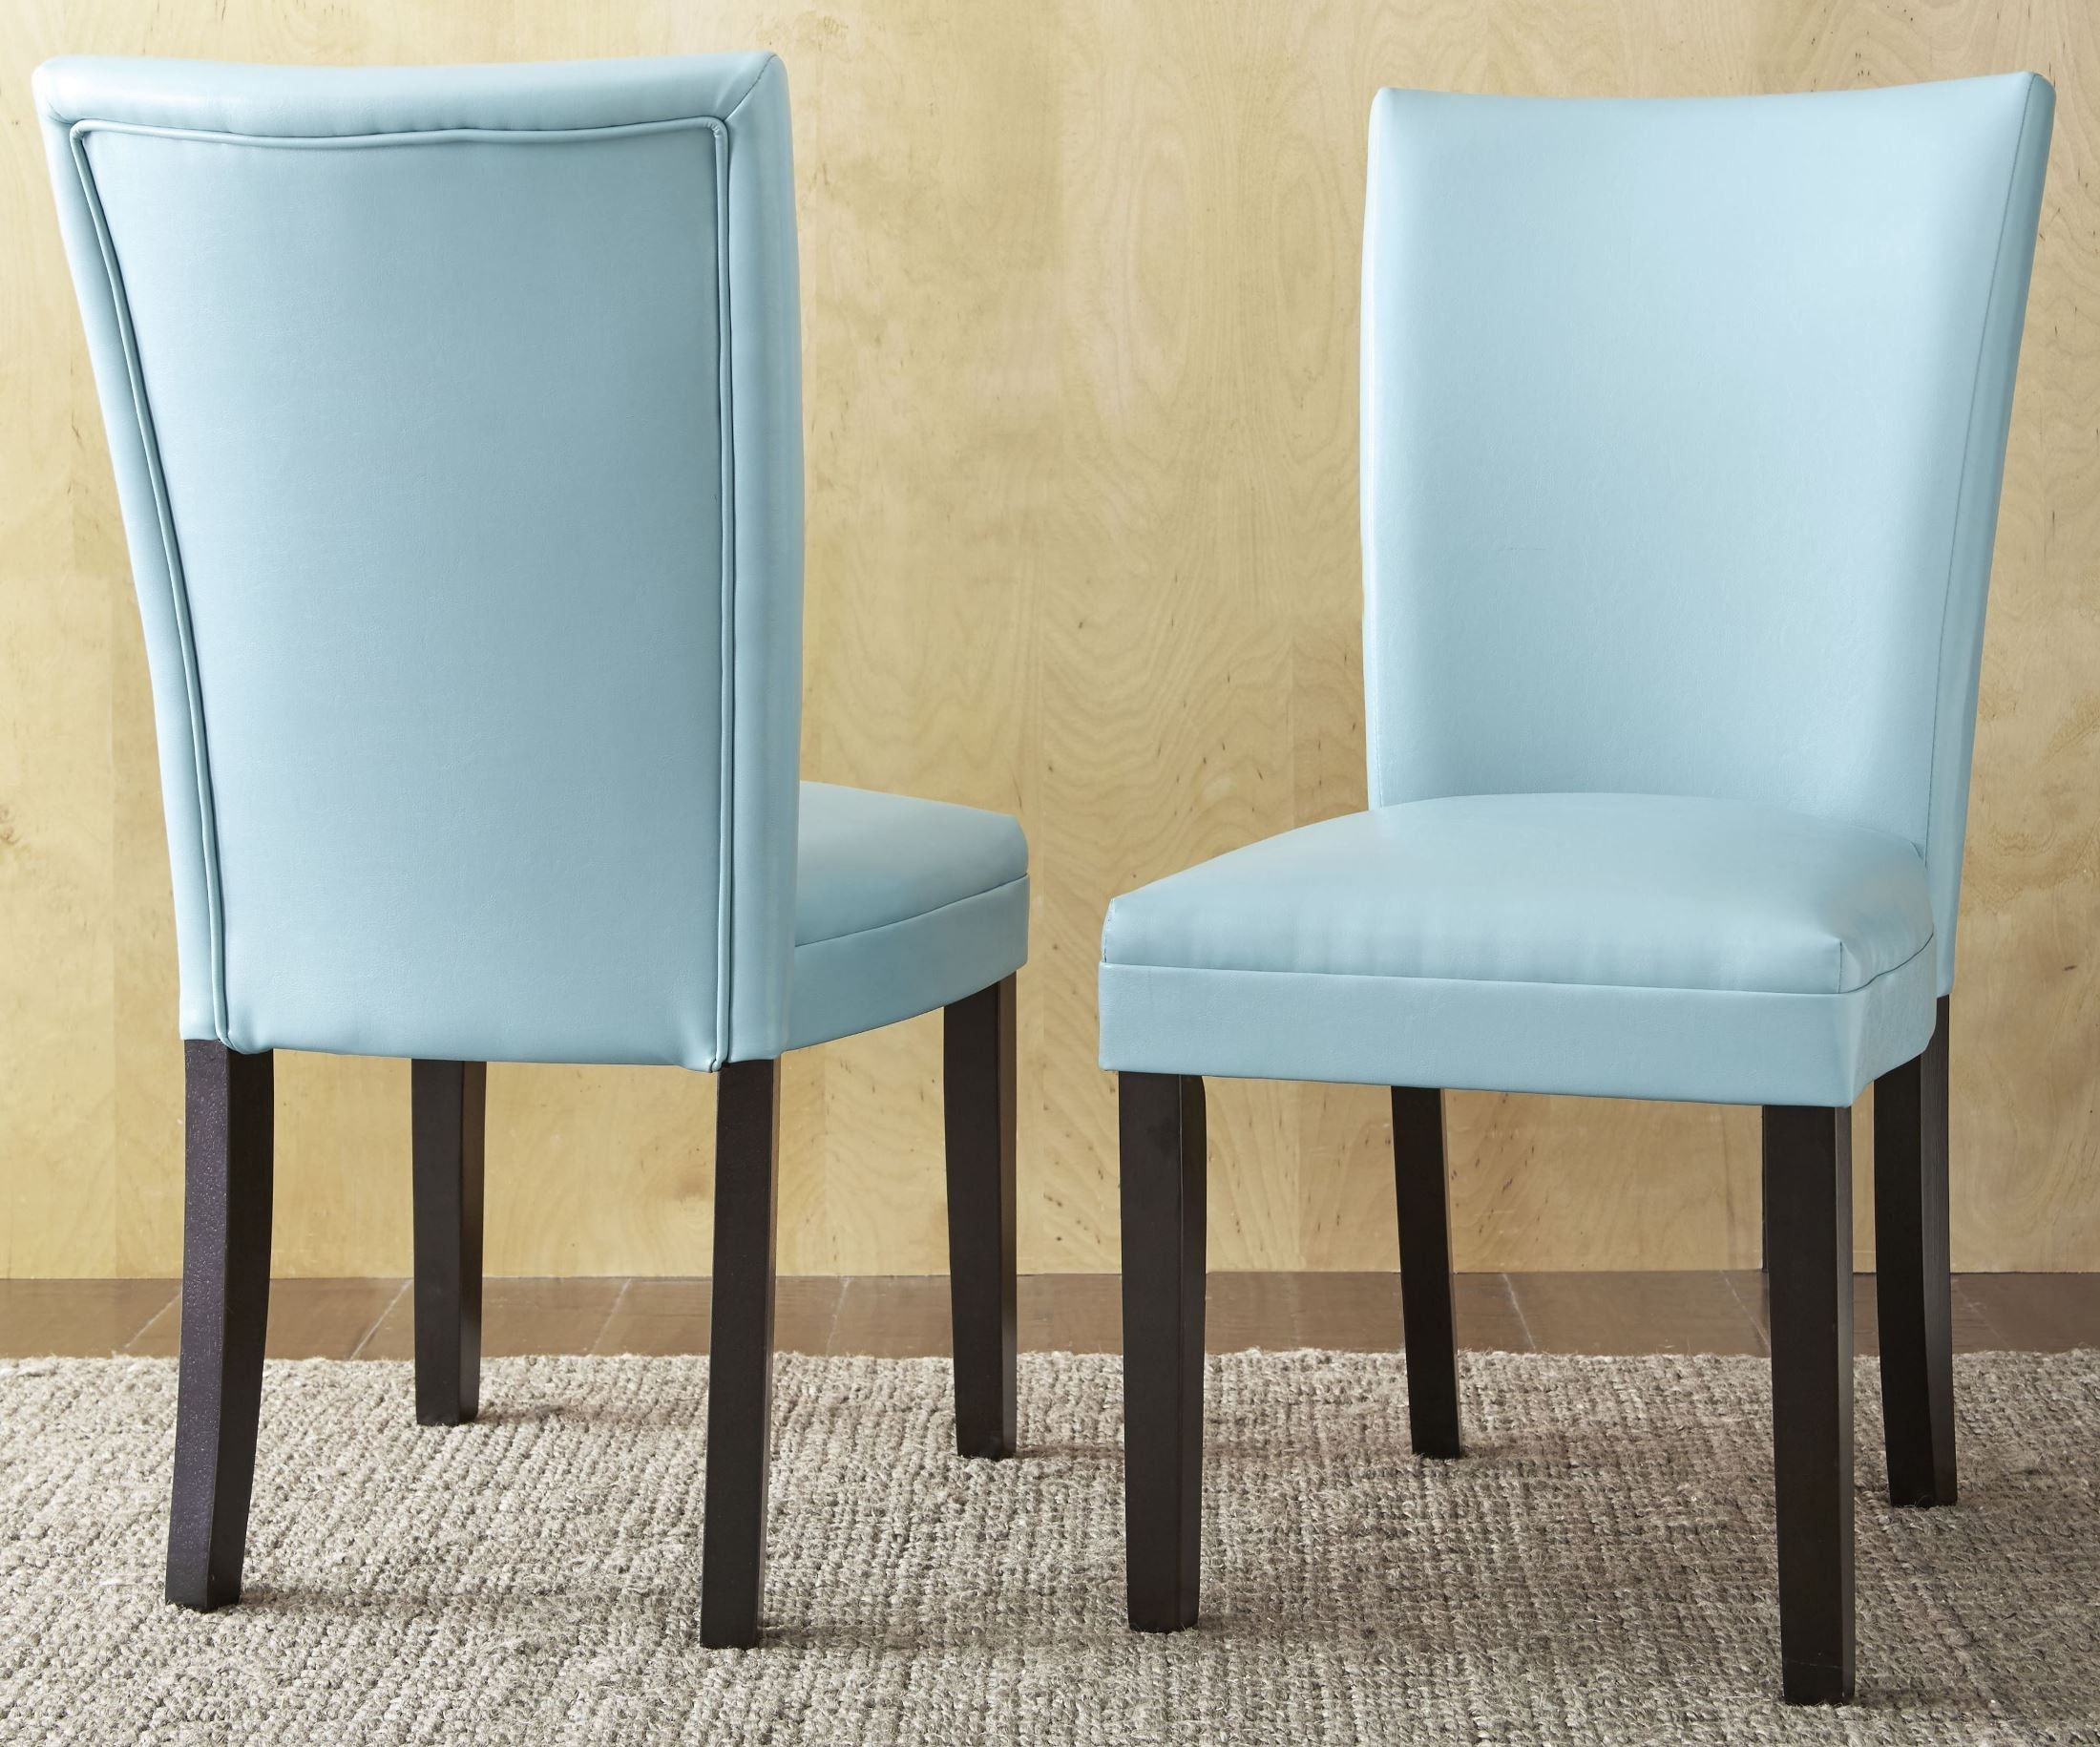 Matinee Aqua Bonded Leather Chair Set Of 2 From Steve